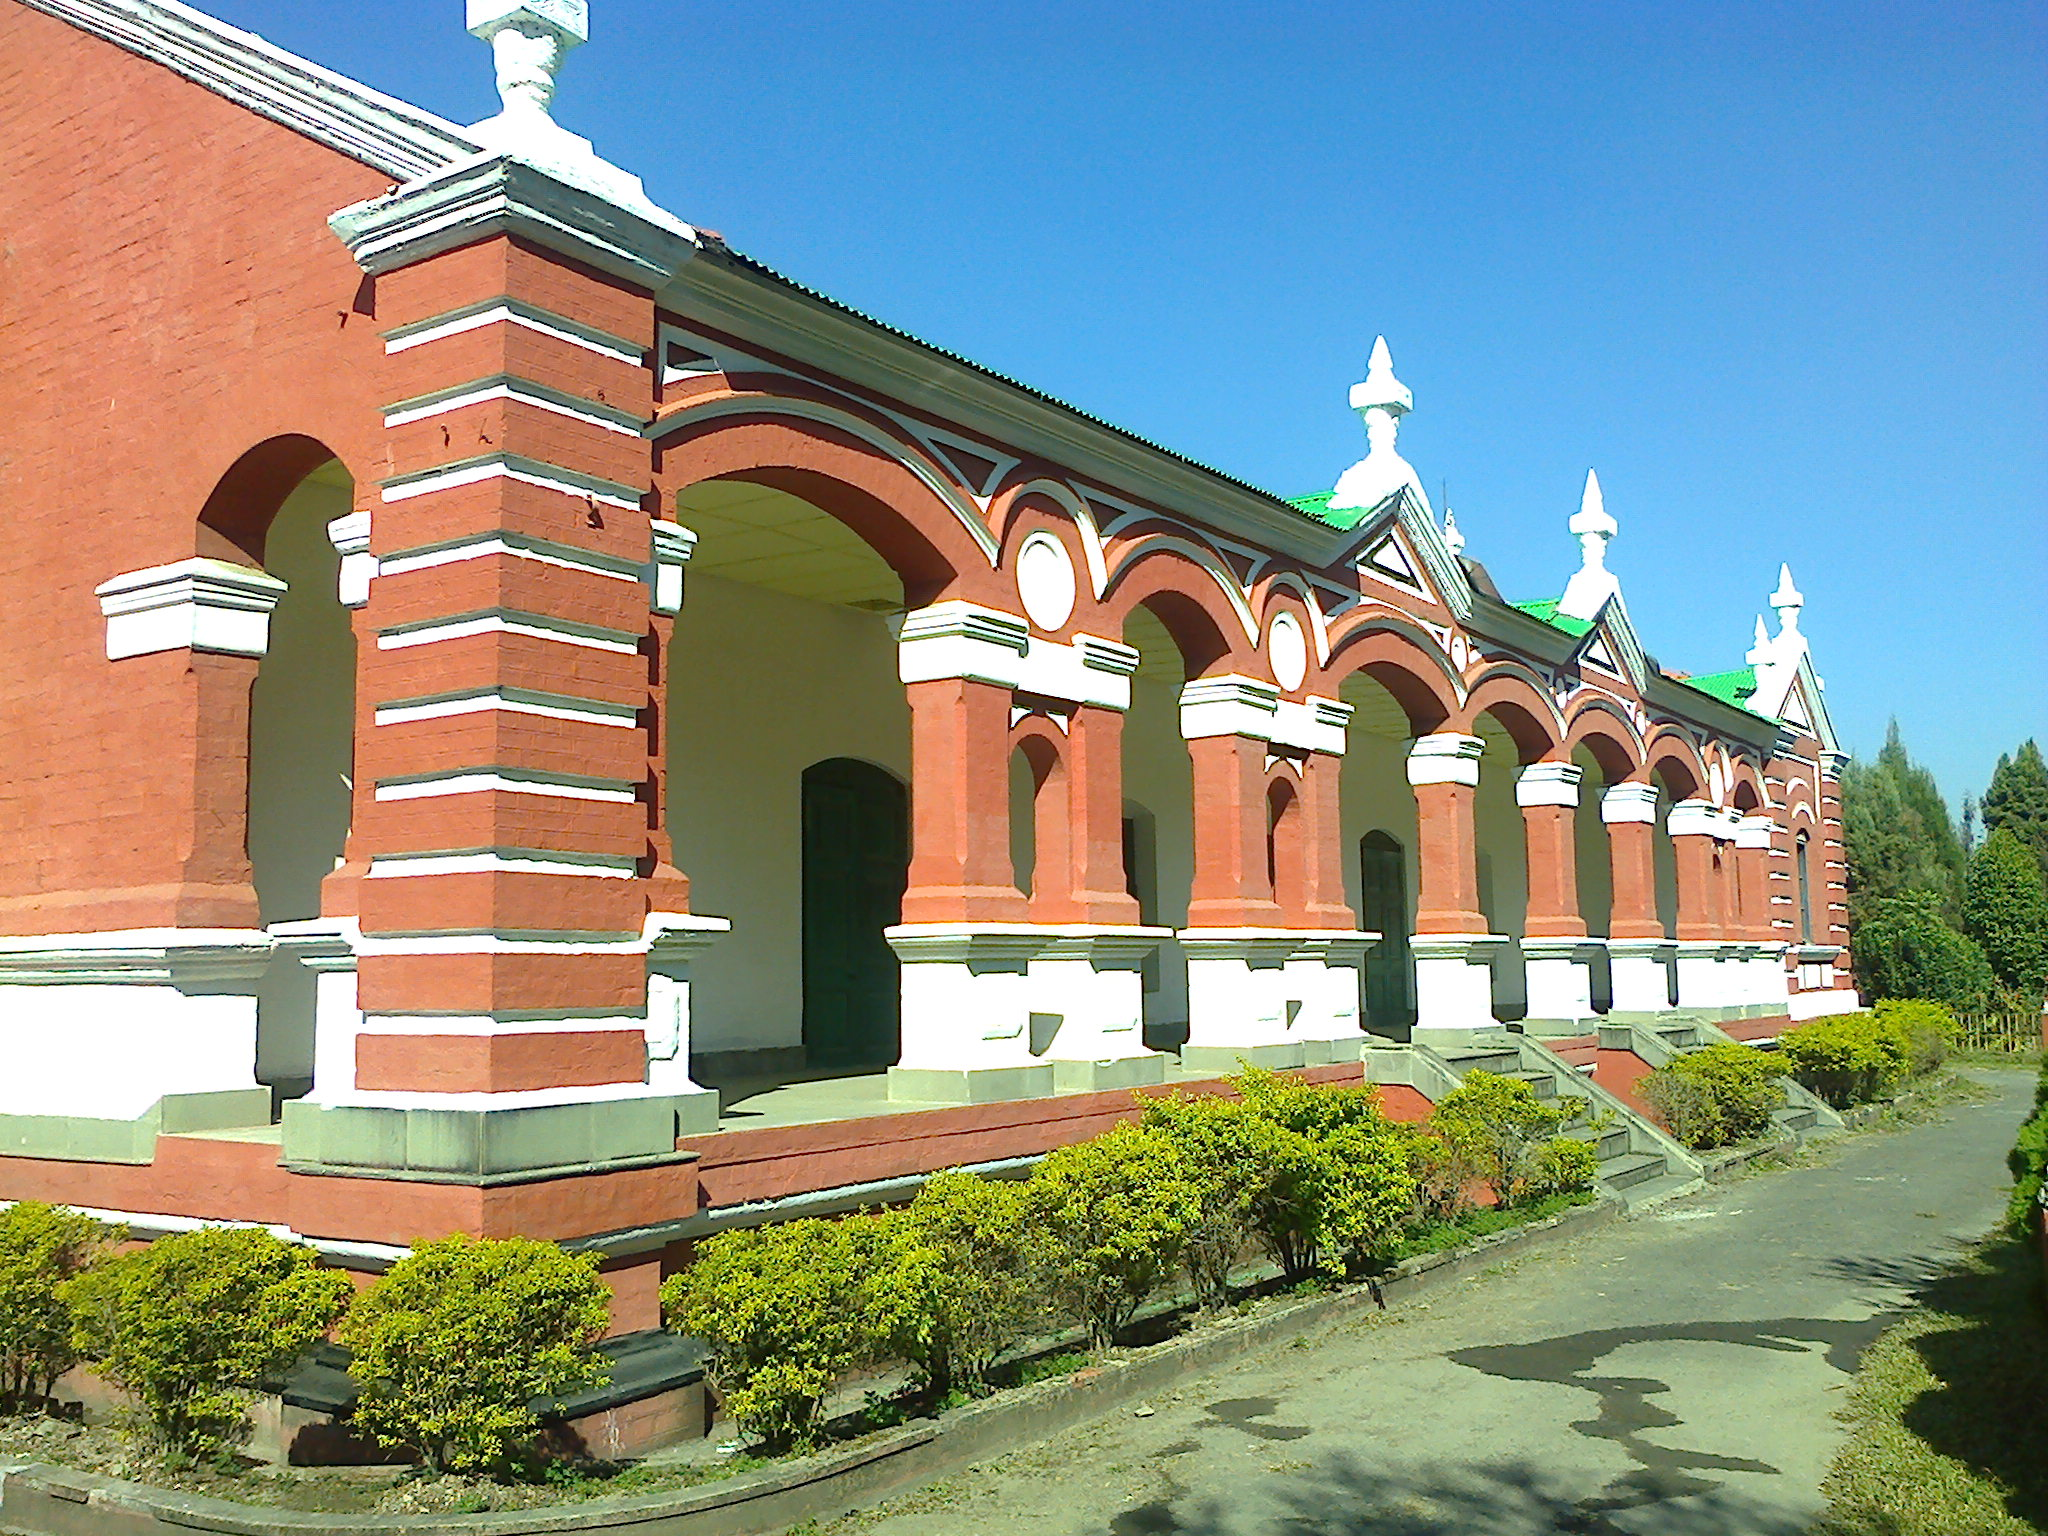 Kangla Palace (or Kangla Fort) - Top Amazing Place to see in Imphal